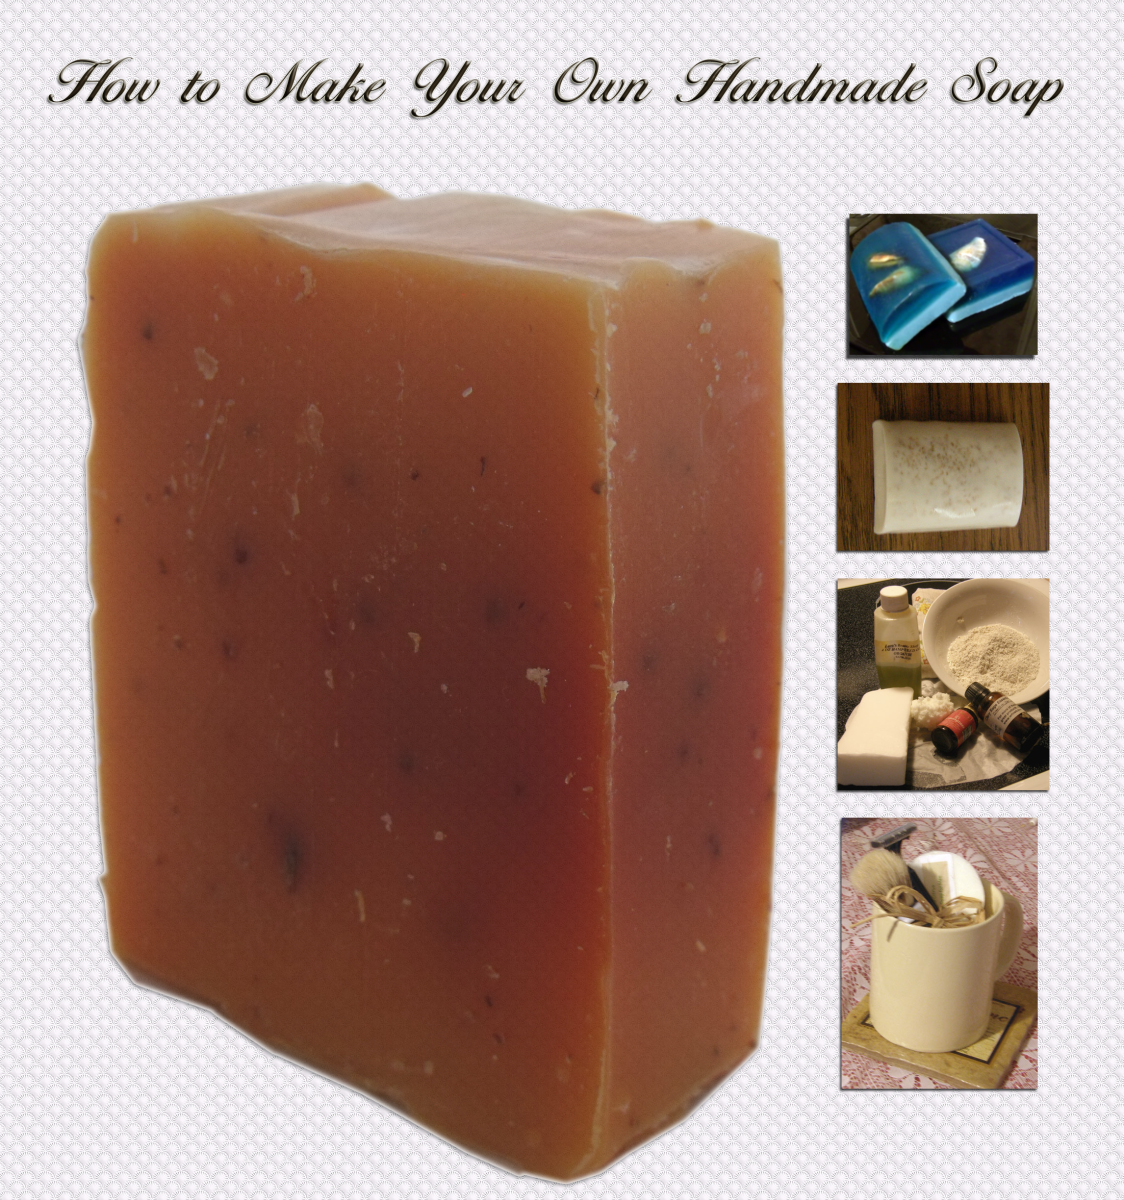 How to Make Your Own Handmade Soap